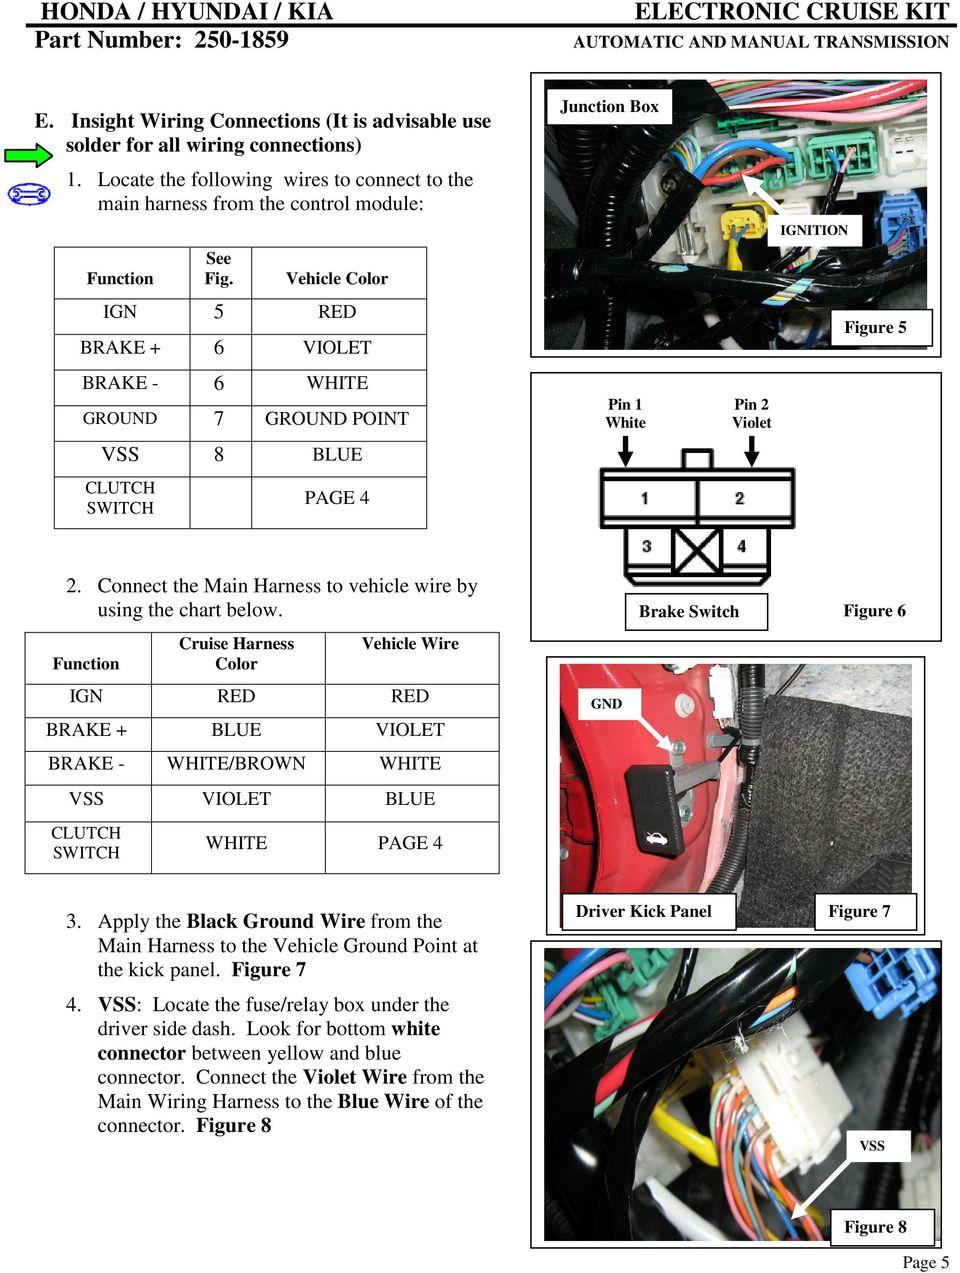 6 Wire Harness Black Red Part Number Pdf Connect The Main To Vehicle By Using Chart Below Function Ign